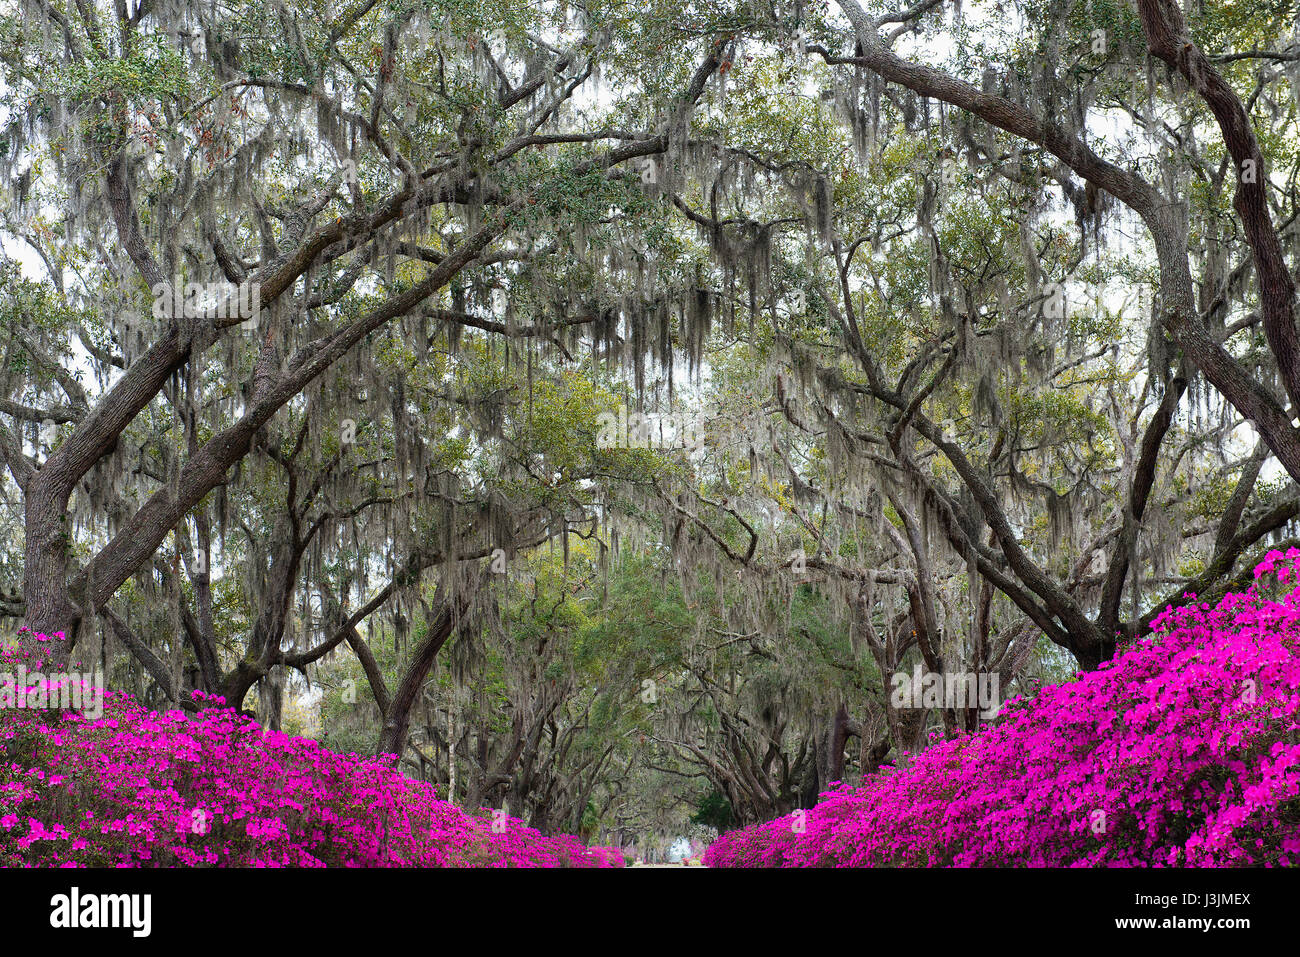 Oak trees covered in spanish moss with blooming azaleas in Bonaventure Cemetery. - Stock Image